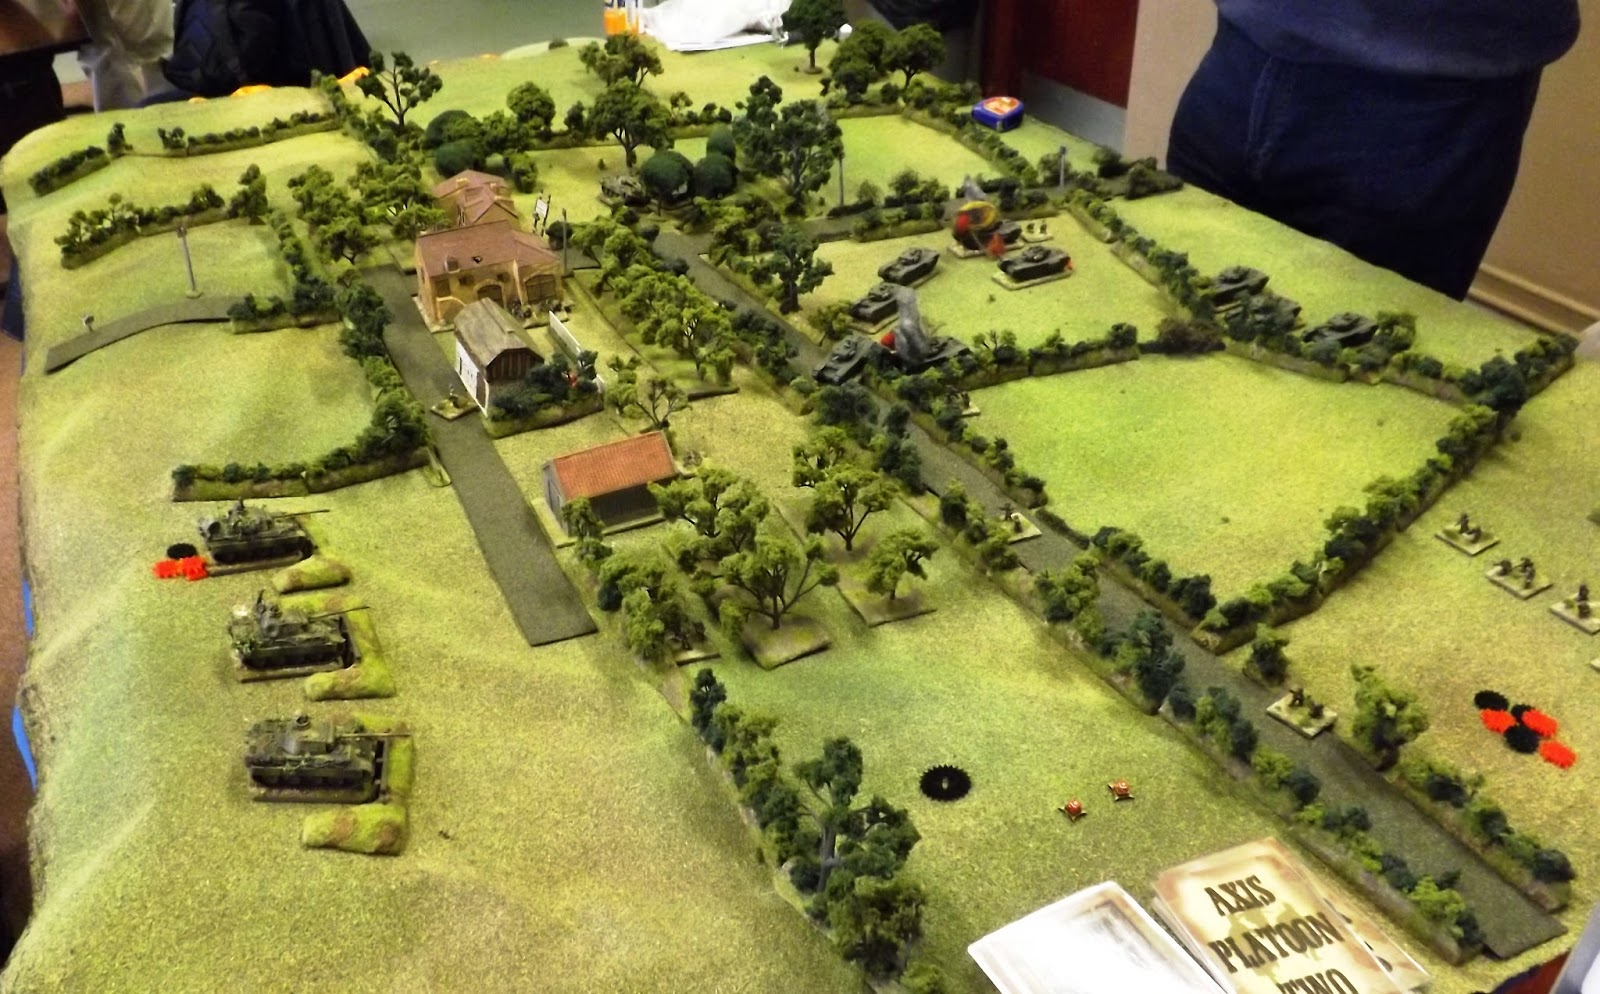 The British attack is halted with the survivors looking to disengage. The opposing tank platoons face off across the hill side as the battle subsides in the centre